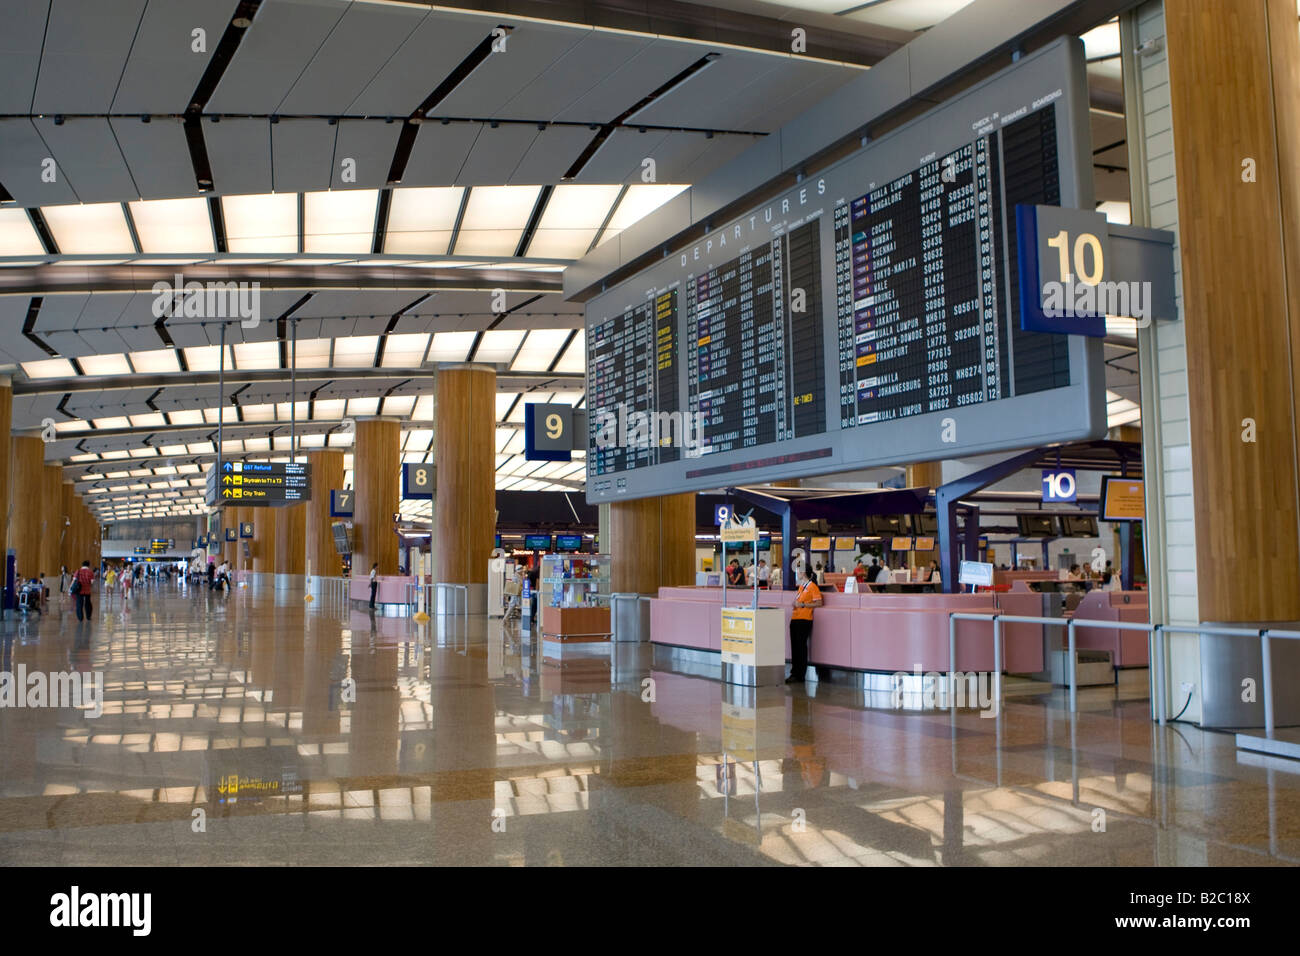 Departure lounge and check-in counters at Singapore Changi Airport, Singapore, Southeast Asia - Stock Image